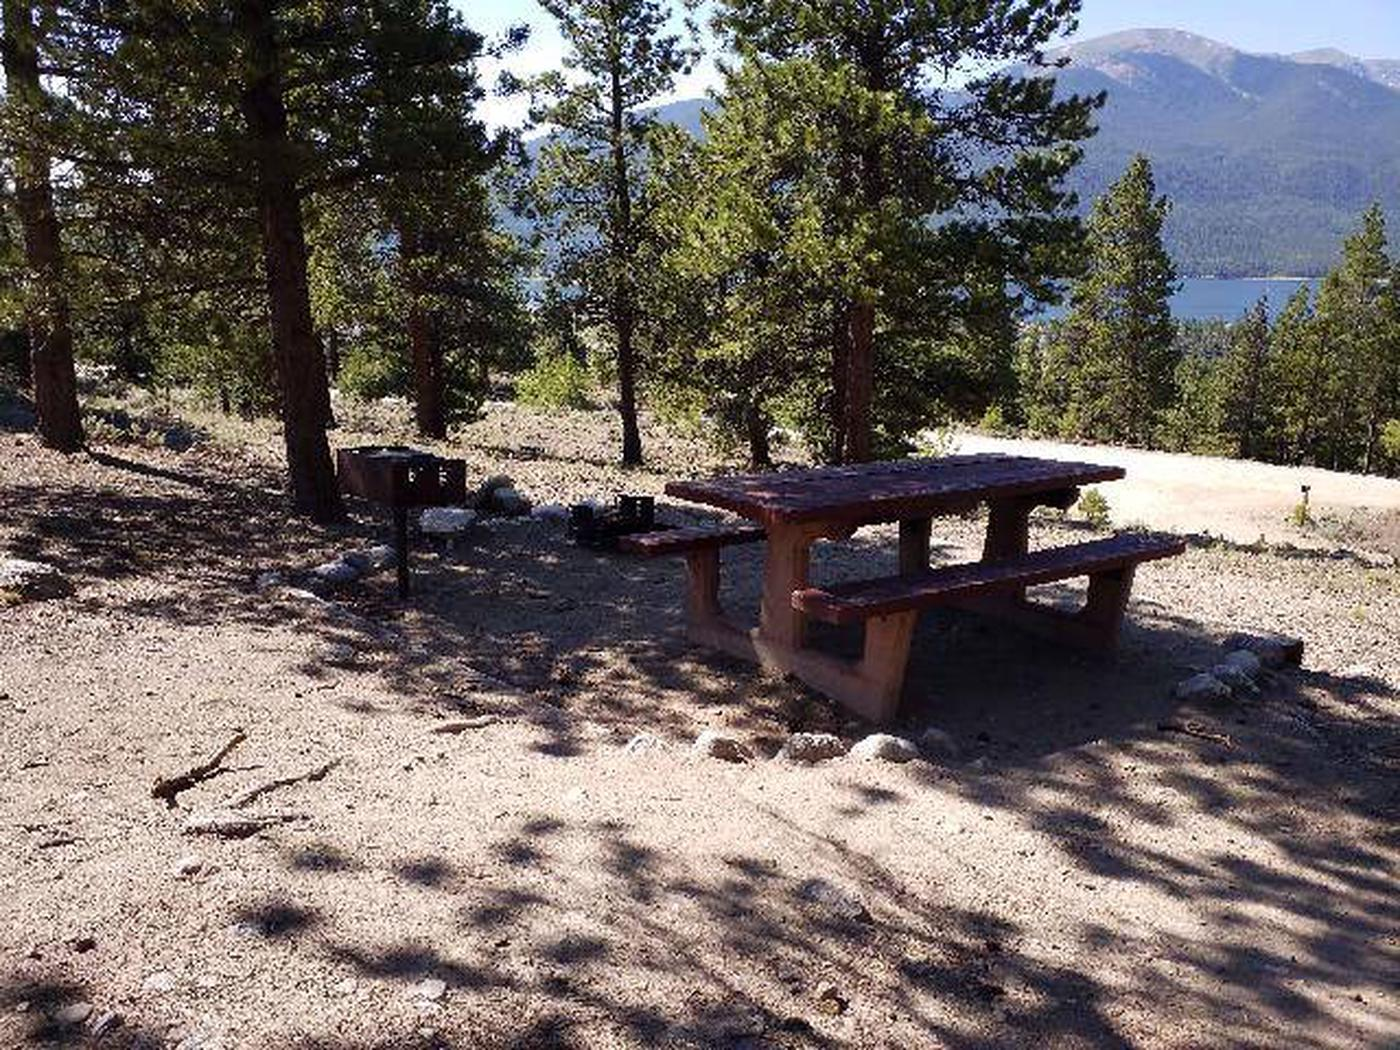 Lakeview Campground, site B1 picnic table